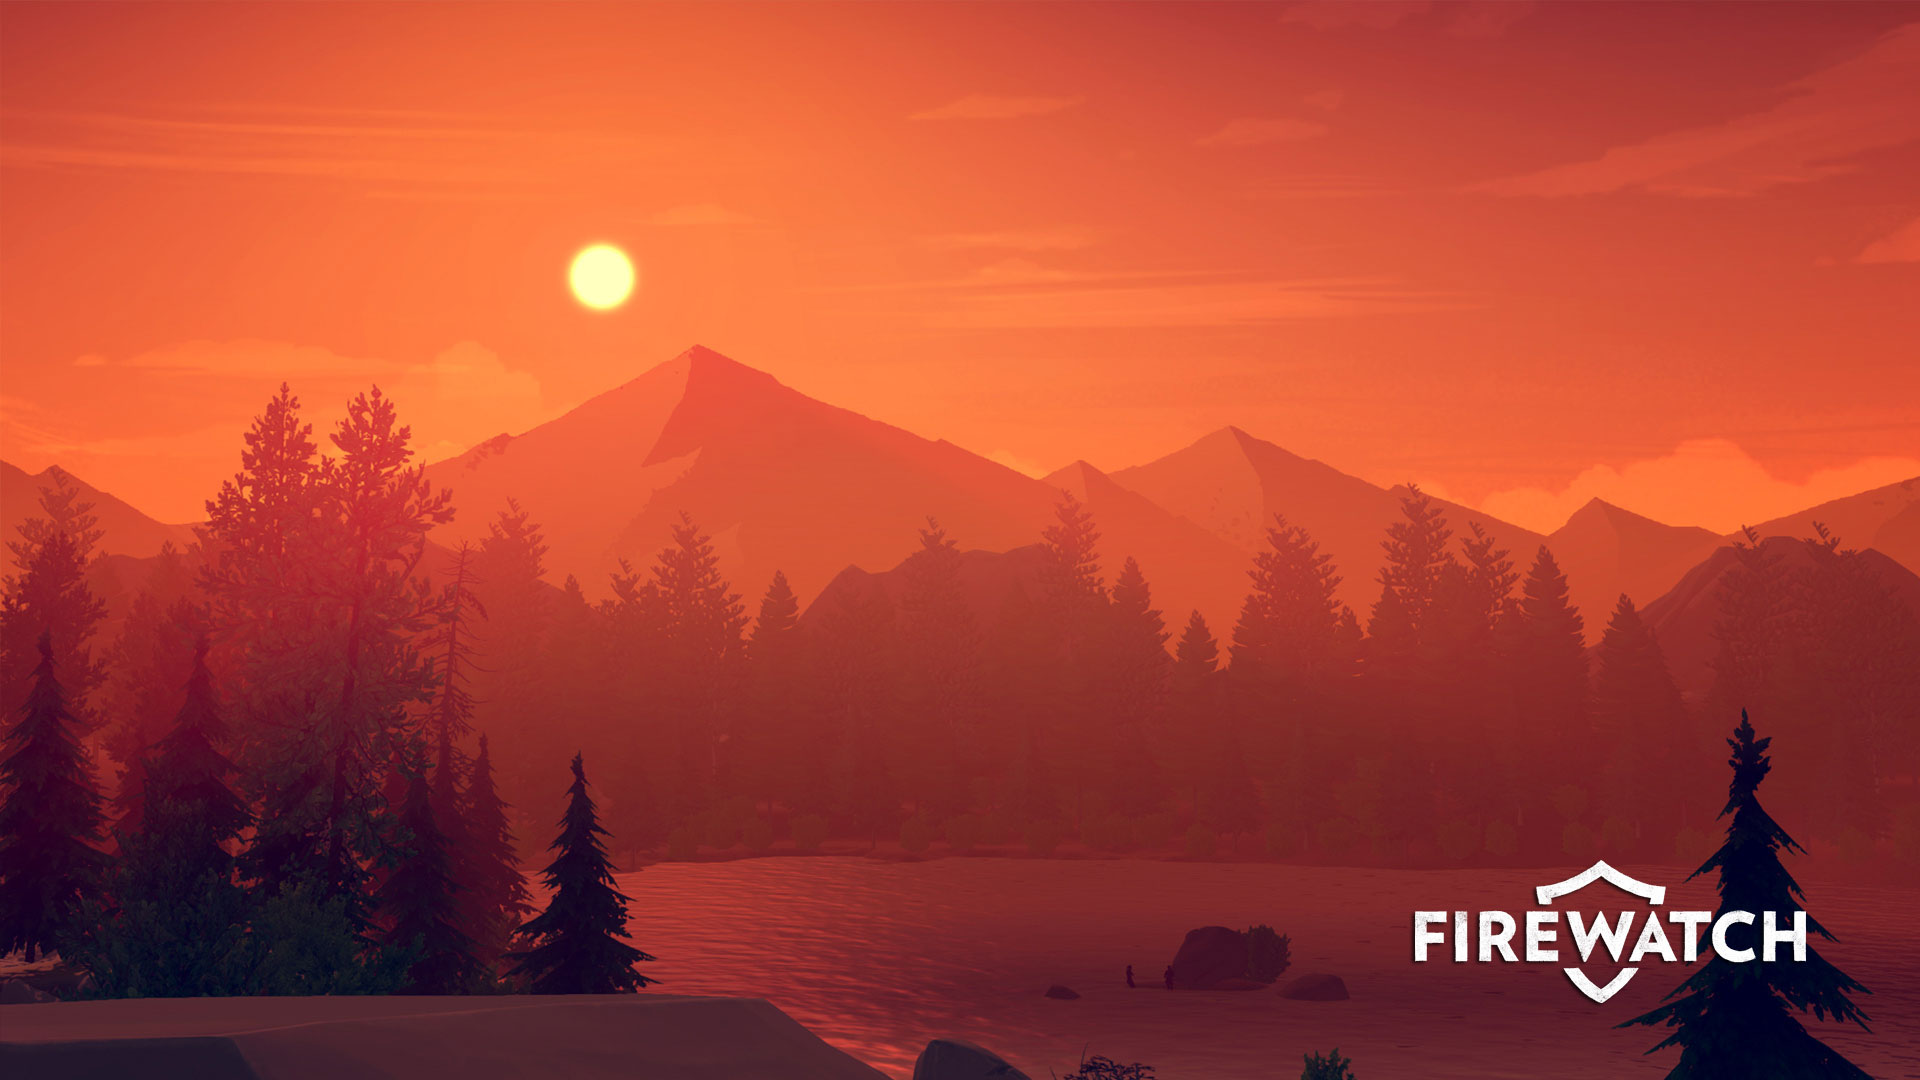 Hd Gaming Wallpapers 4k Hd Wallpapers Hd Gaming: Firewatch Wallpapers In Ultra HD